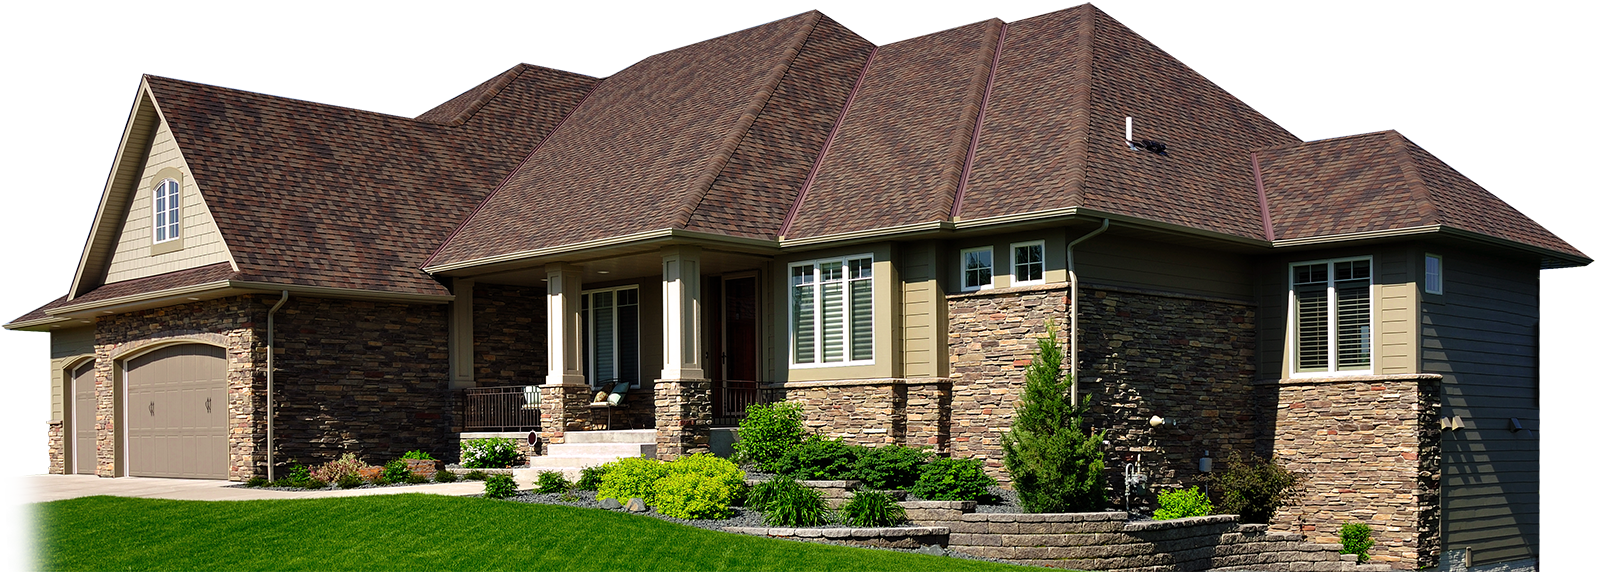 Quality guaranteed residential and commercial roof repair, maintenance, and replacement in Southern Oregon